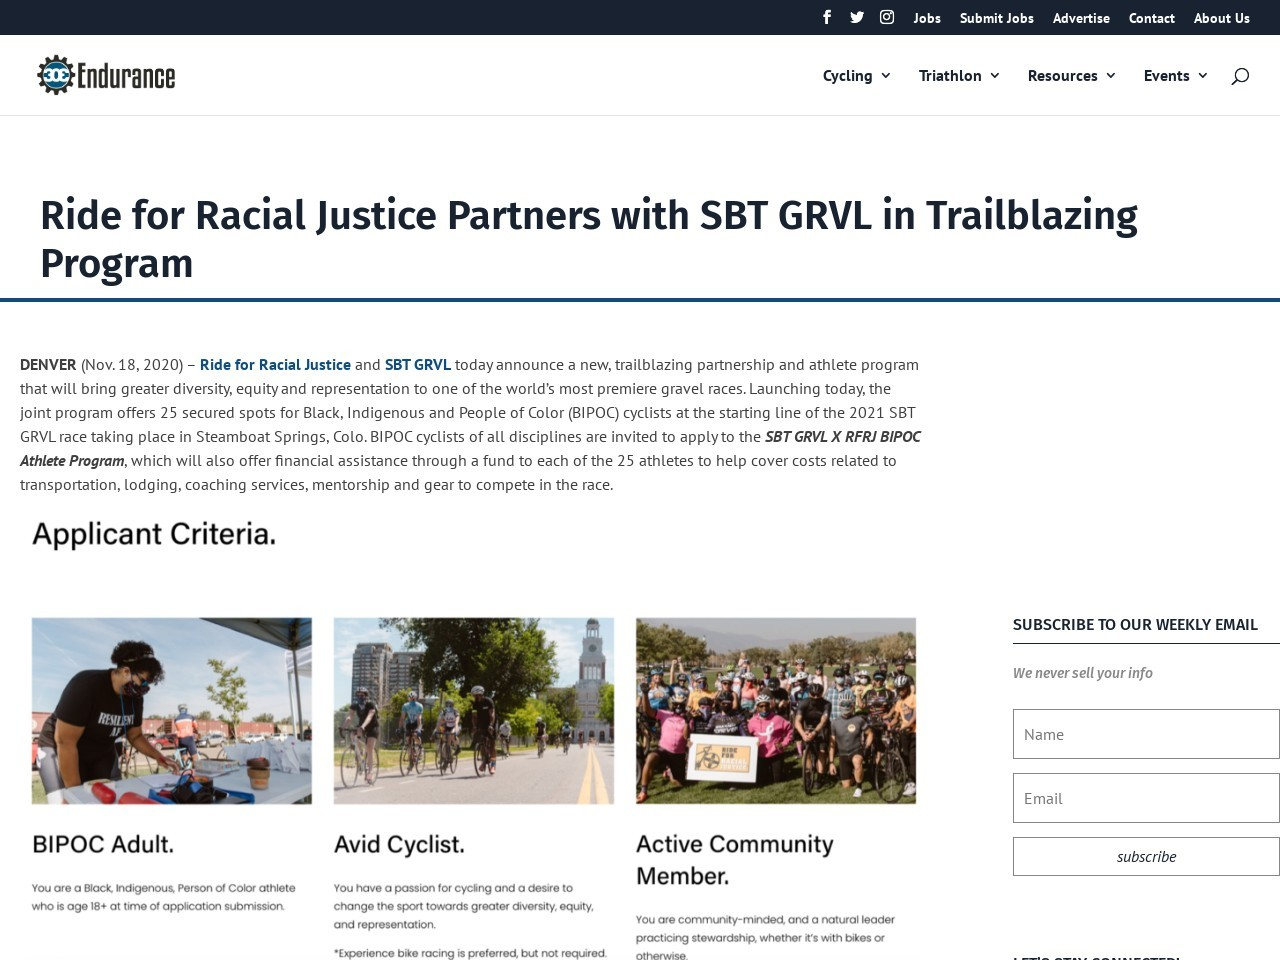 Ride for Racial Justice Partners with SBT GRVL in Trailblazing Program